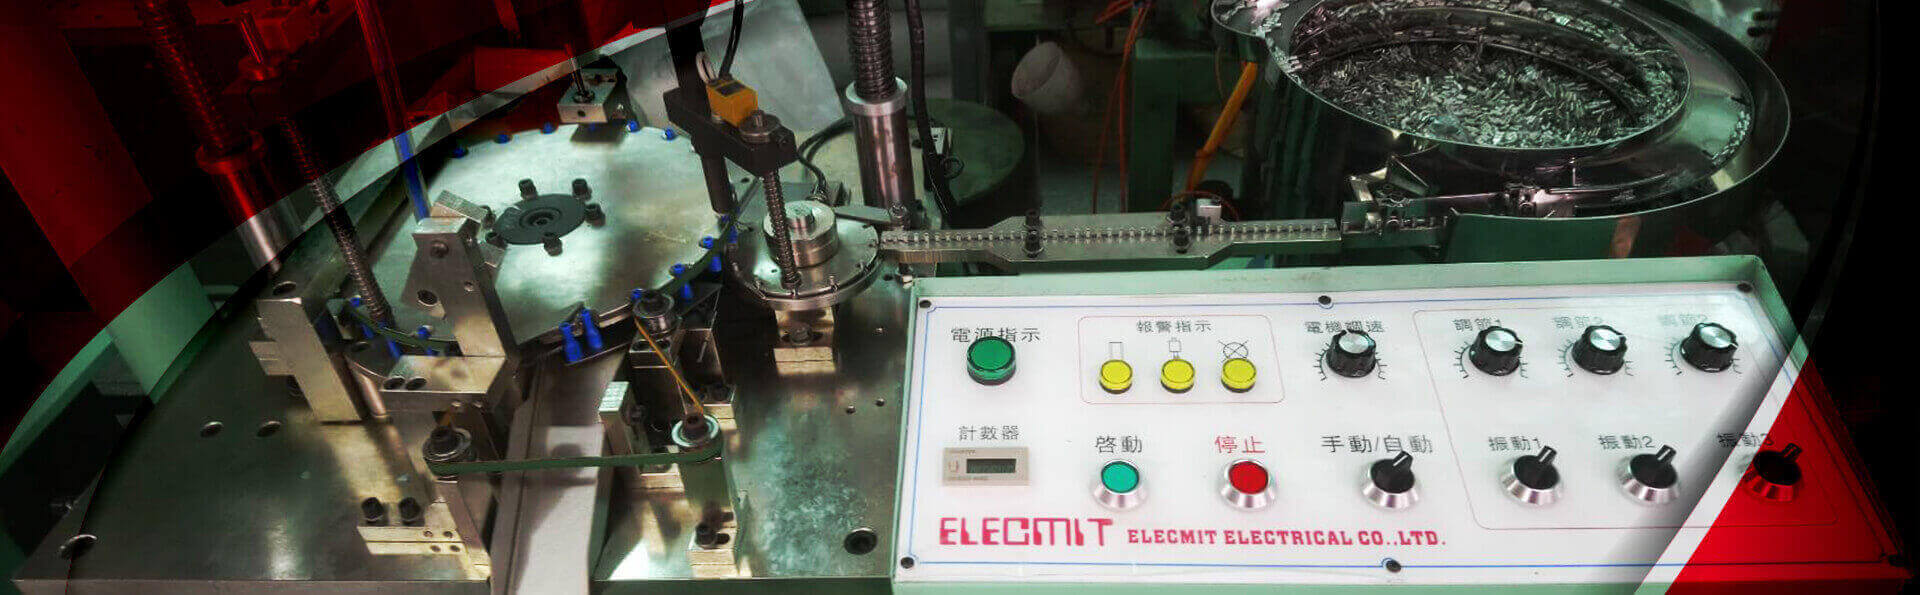 Electrical Terminals|Wiring Accessories|Elecmit Eletrical Co., Ltd.